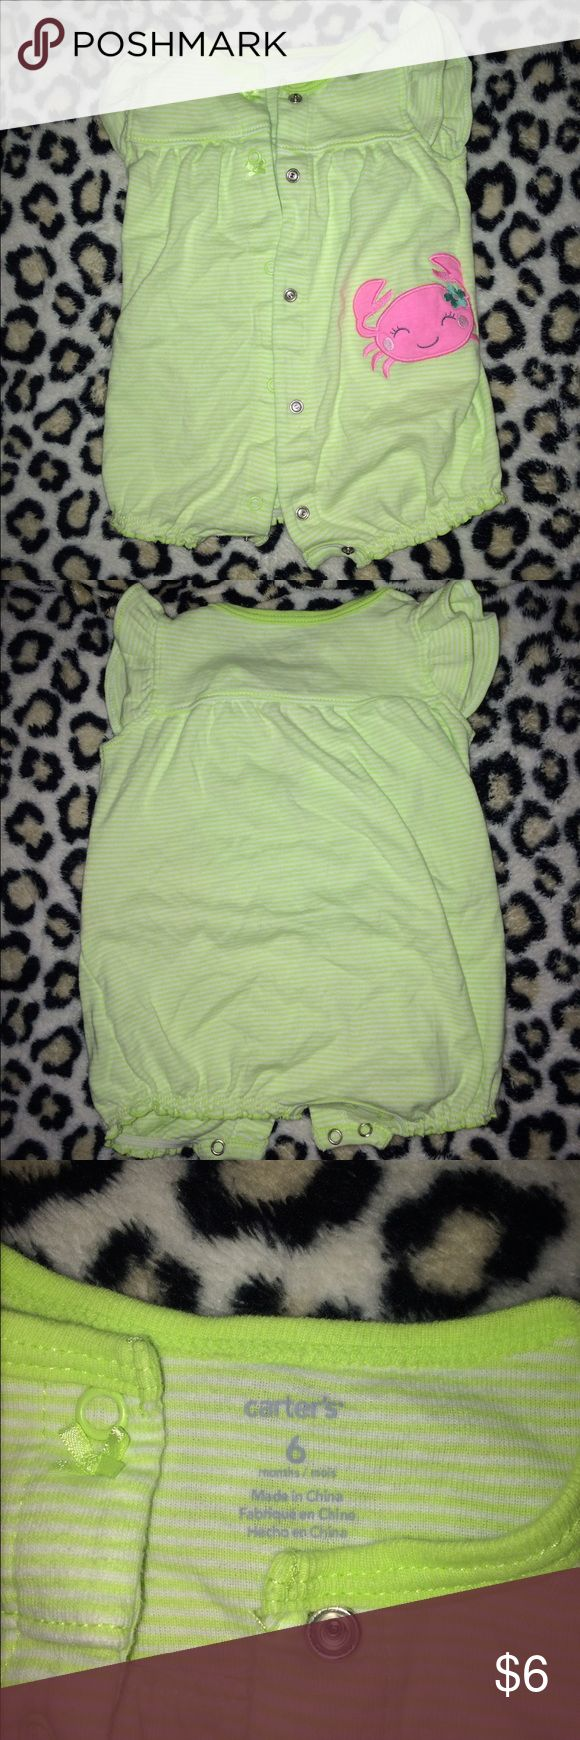 Carters 6 month lime green one piece outfit Carters lime green with tiny white stripes, short sleeve one piece or romper has pink crab on front. Perfect condition nwot size 6 months perfect for summer Carter's One Pieces